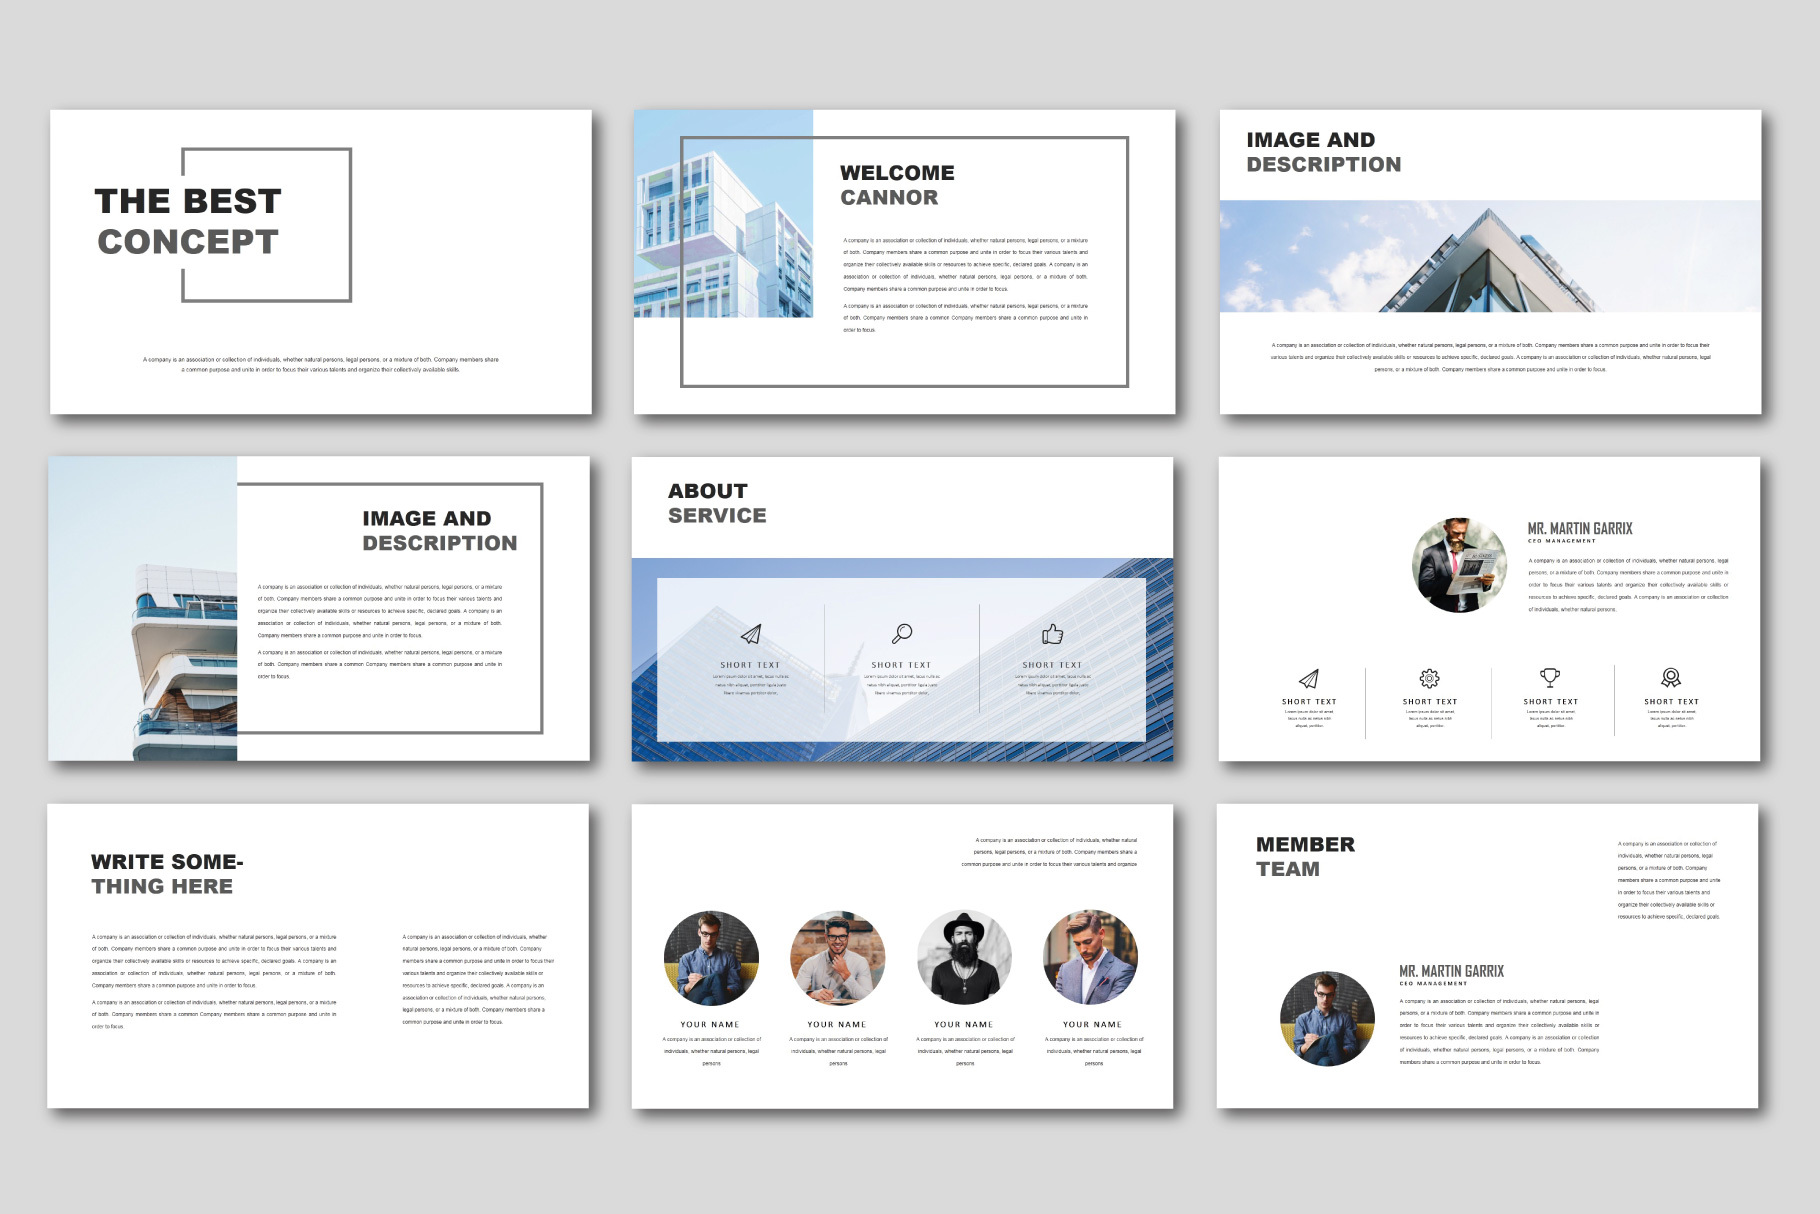 The Best Concept Business Keynote example image 2